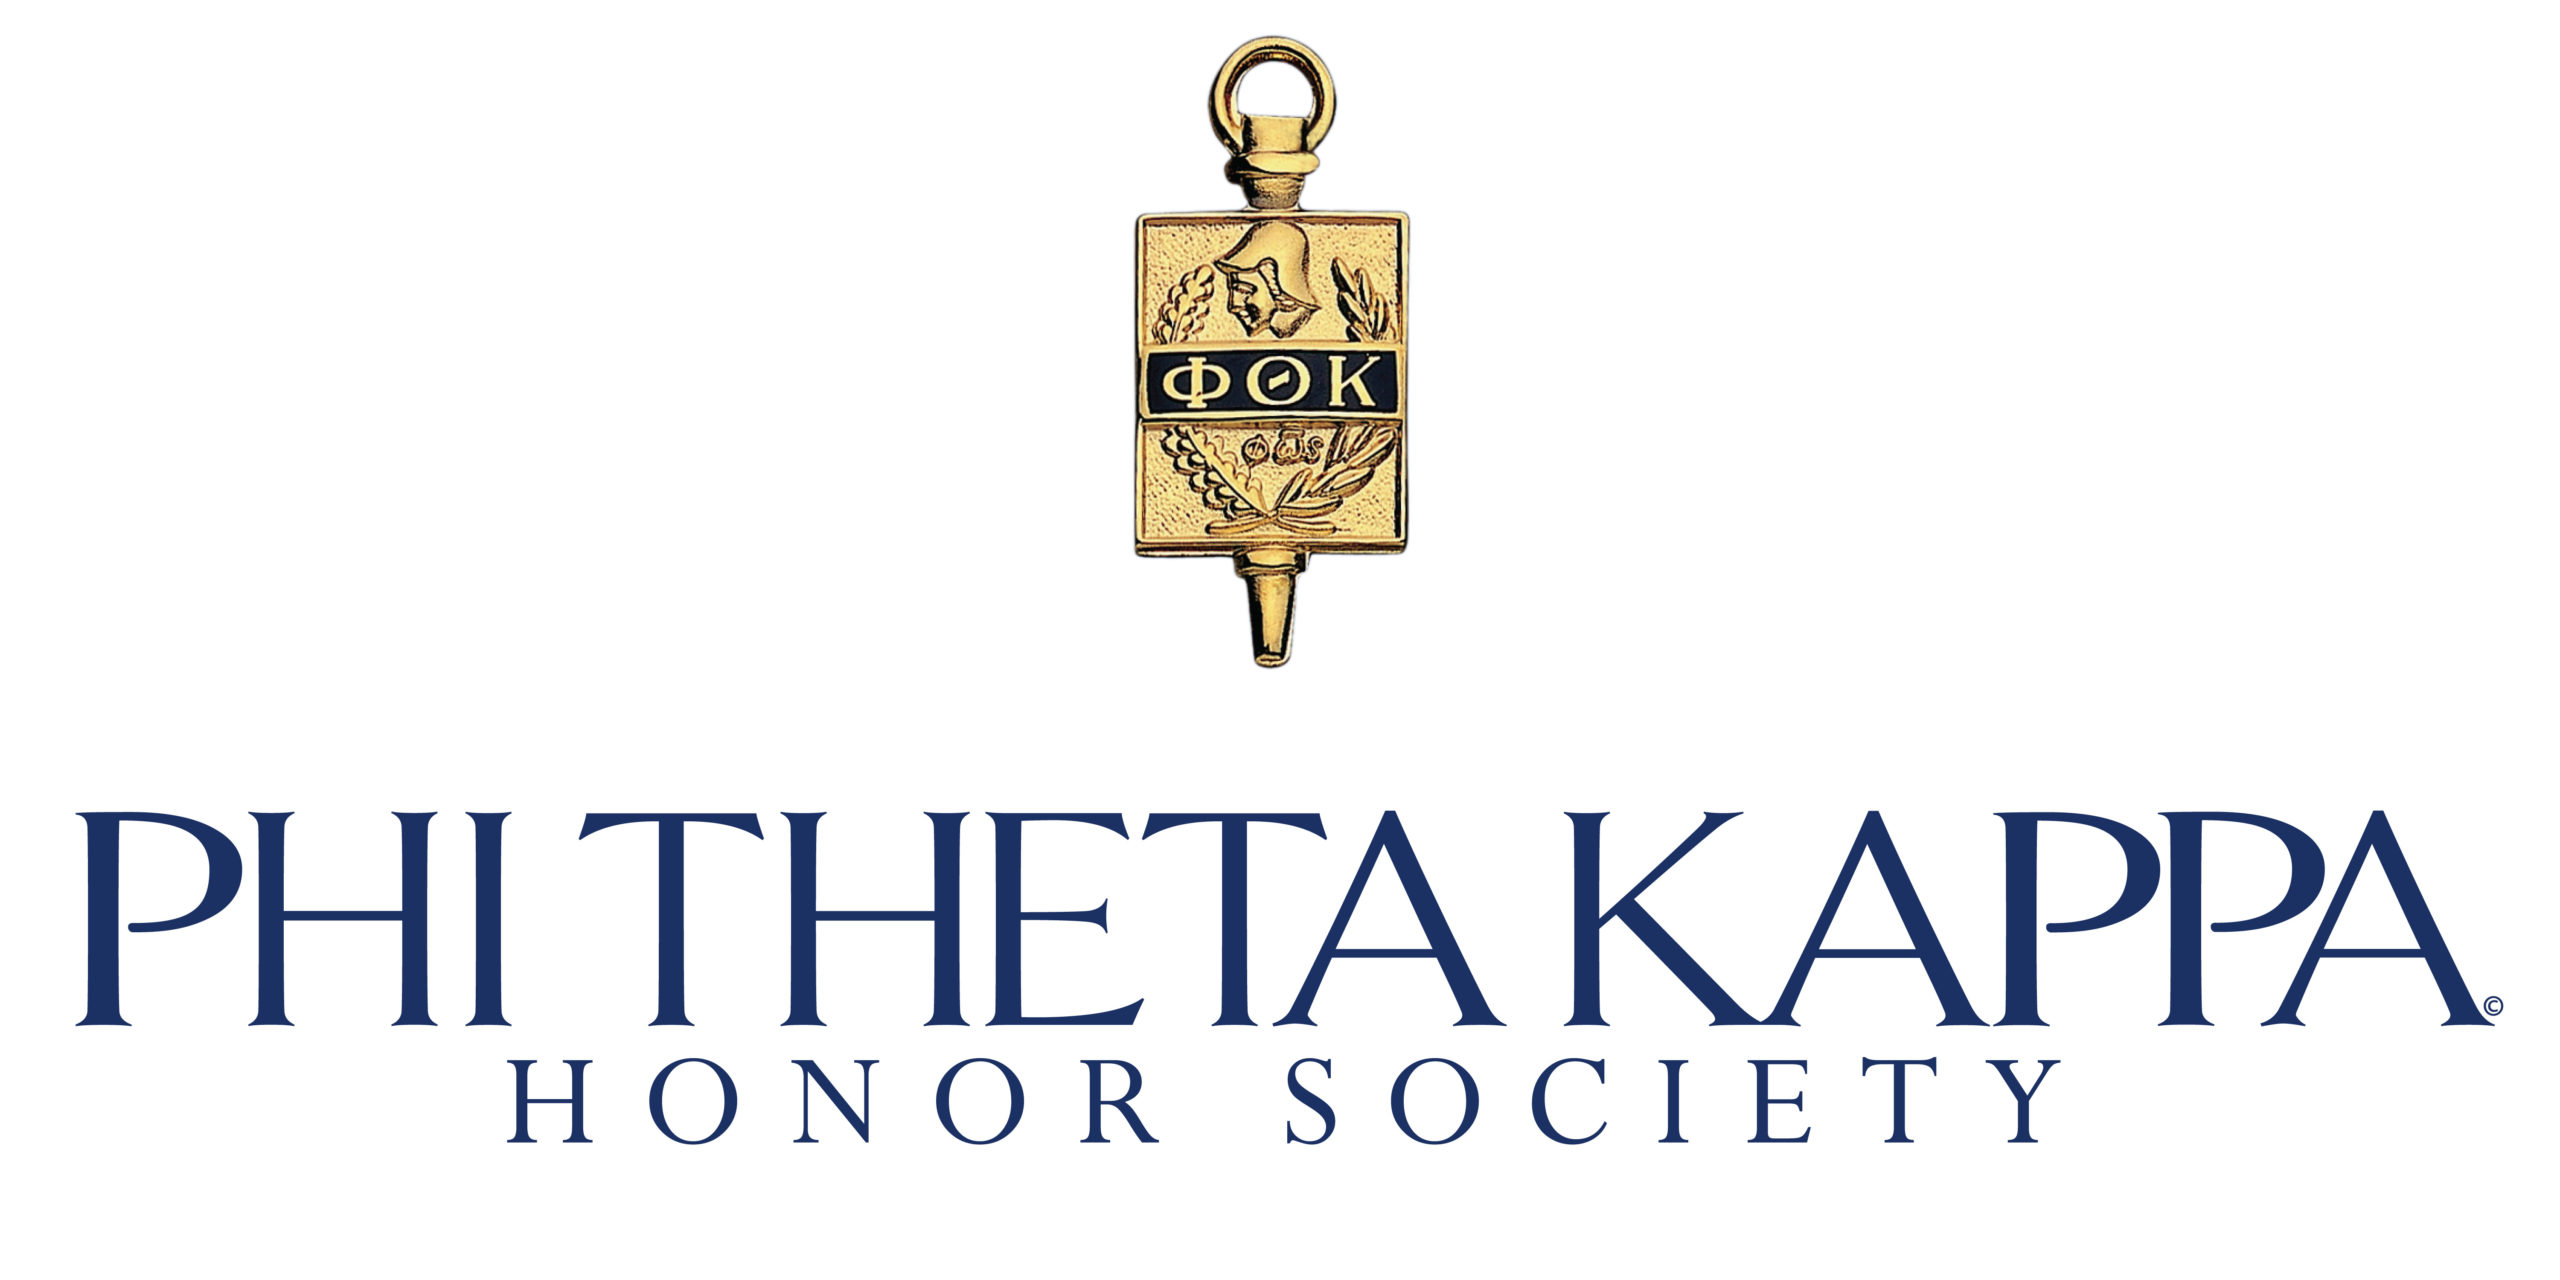 SC4 inducts 63 students into its chapter of Phi Theta Kappa international honor society